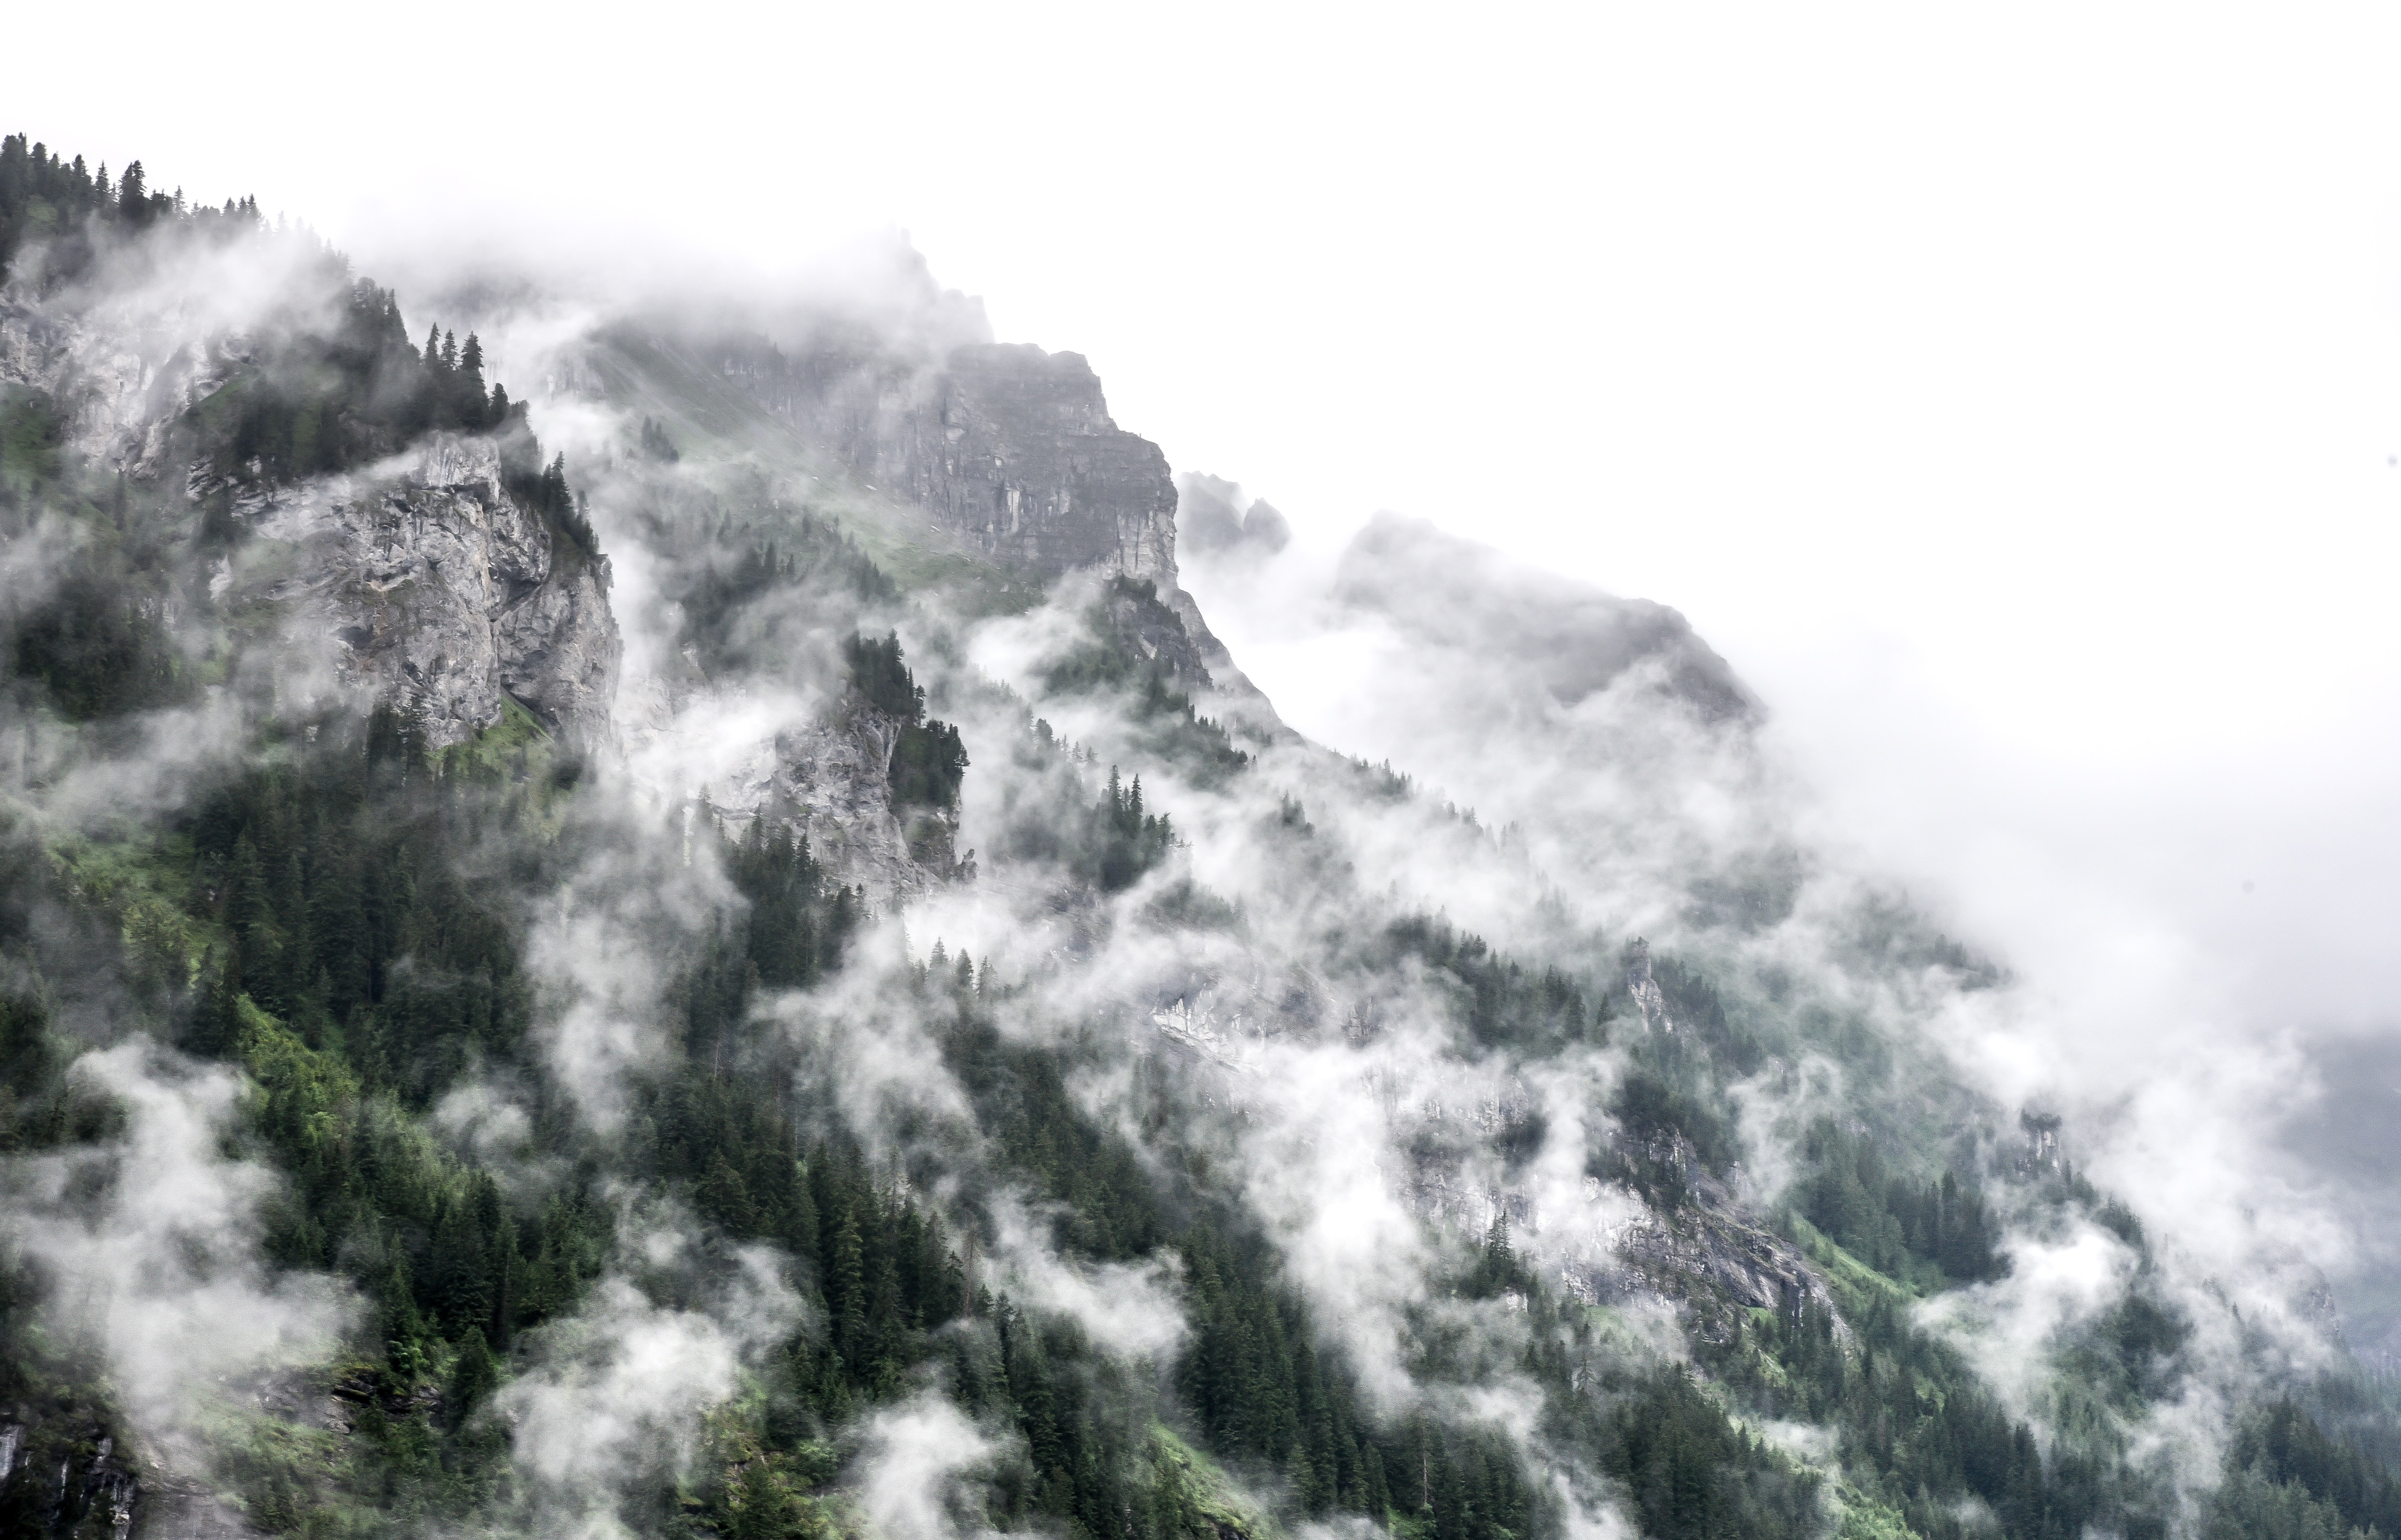 View of the rocky and evergreen mountain side with the fog rising near Mürren